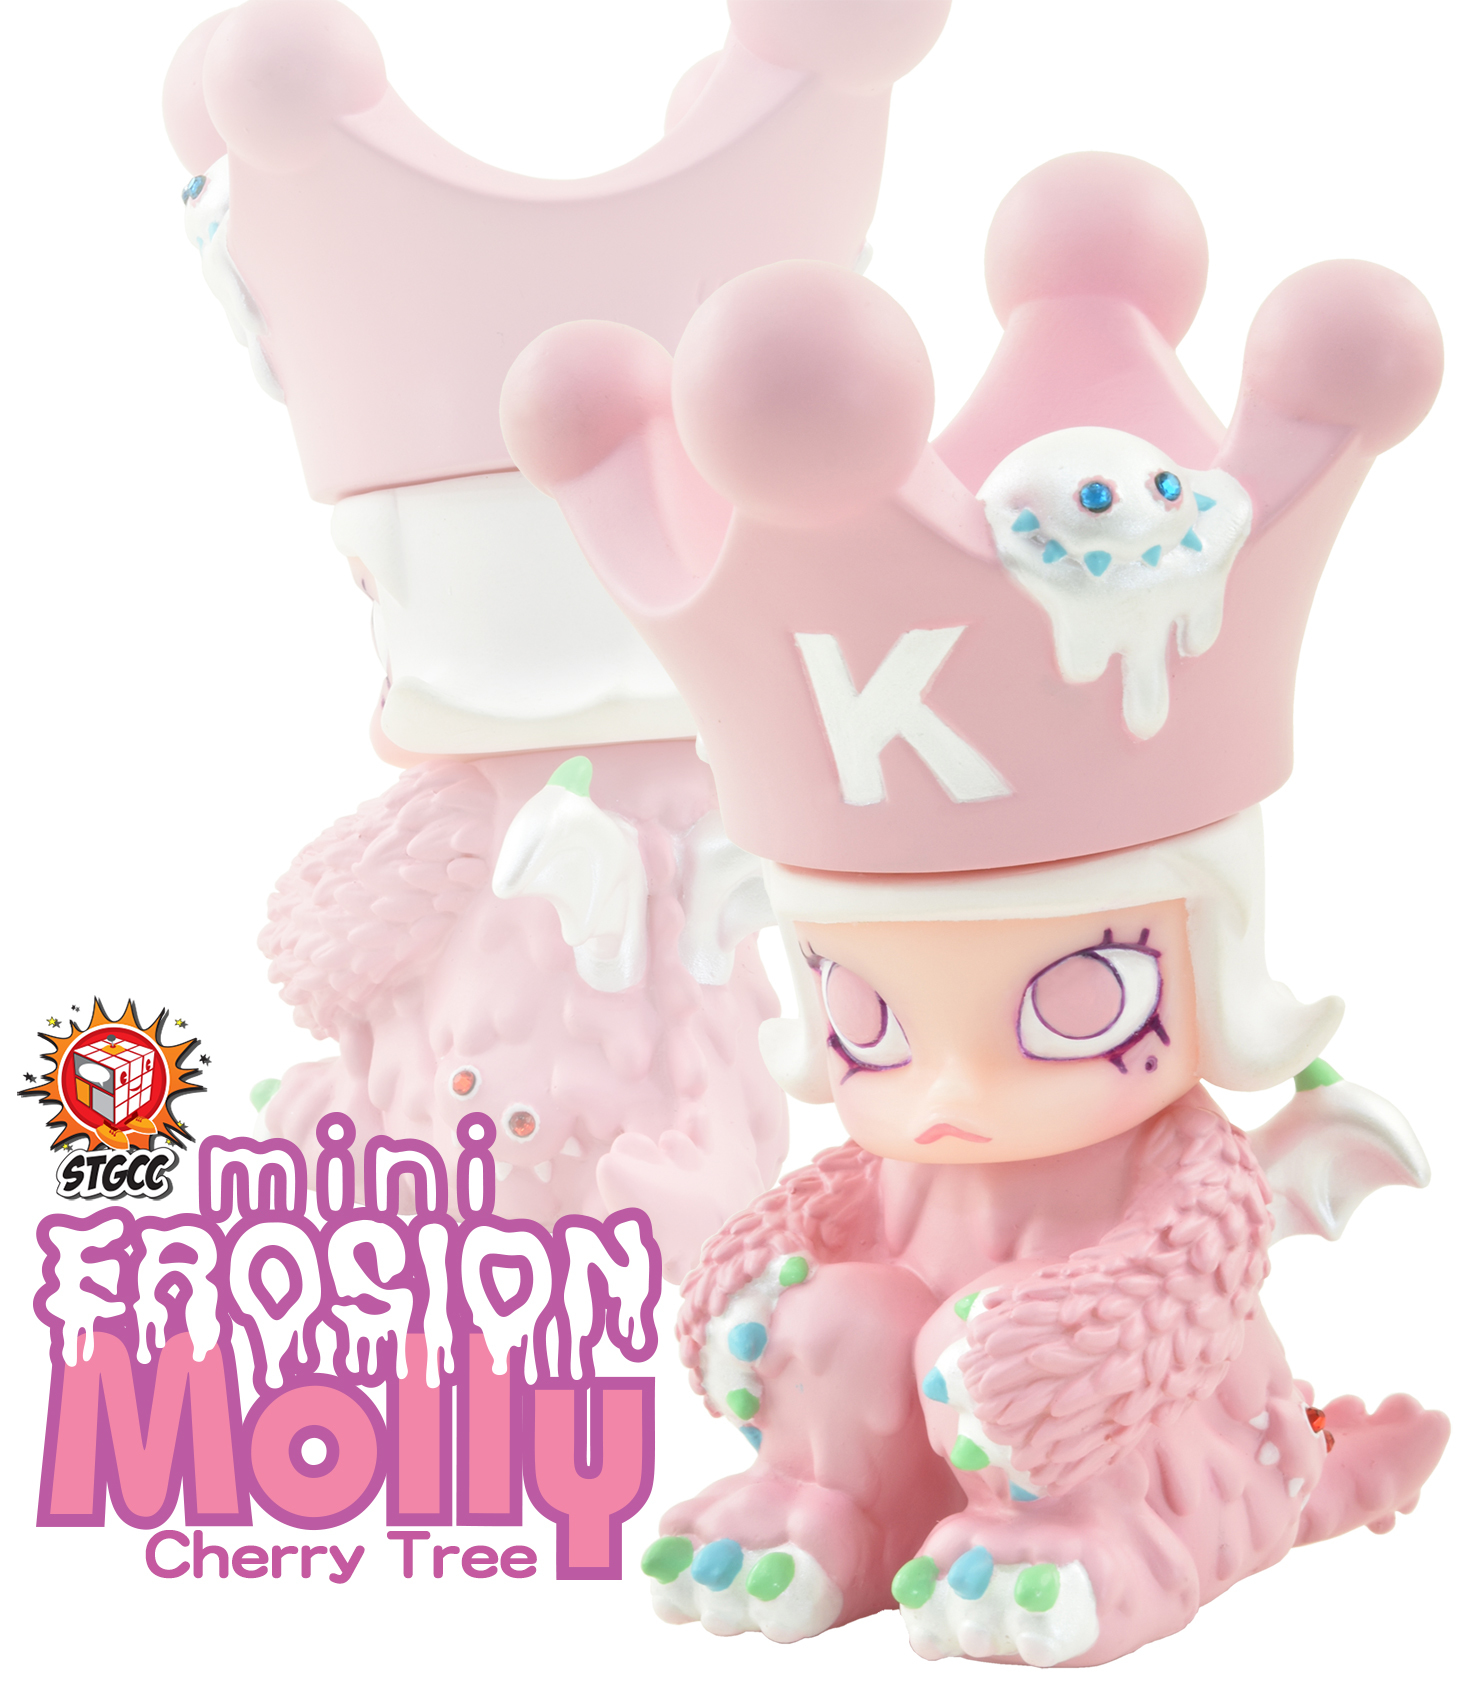 mini-erosion-molly-stgcc-first-sale.jpg